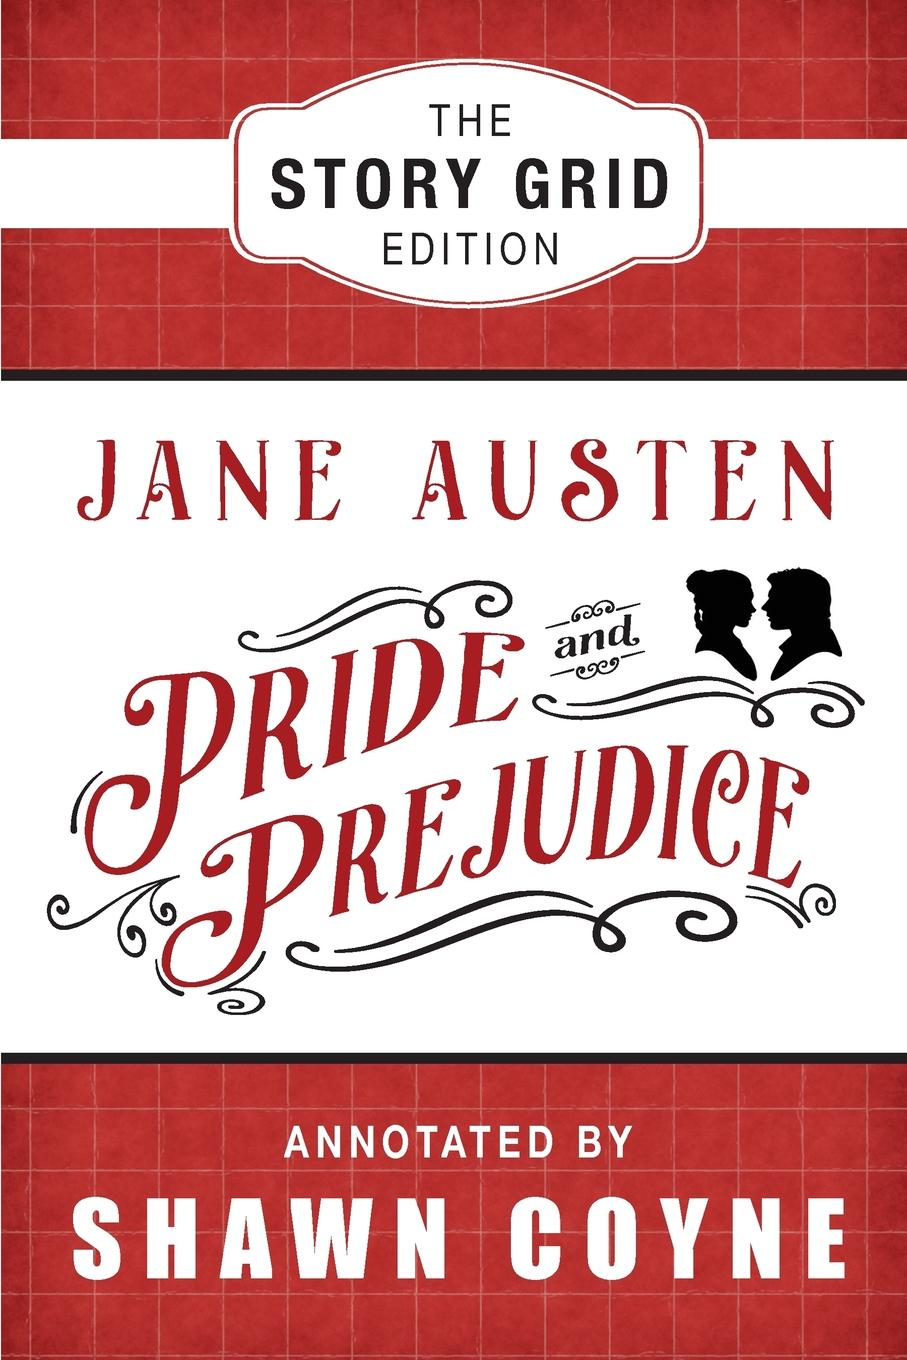 Jane Austen Pride and Prejudice. The Story Grid Edition